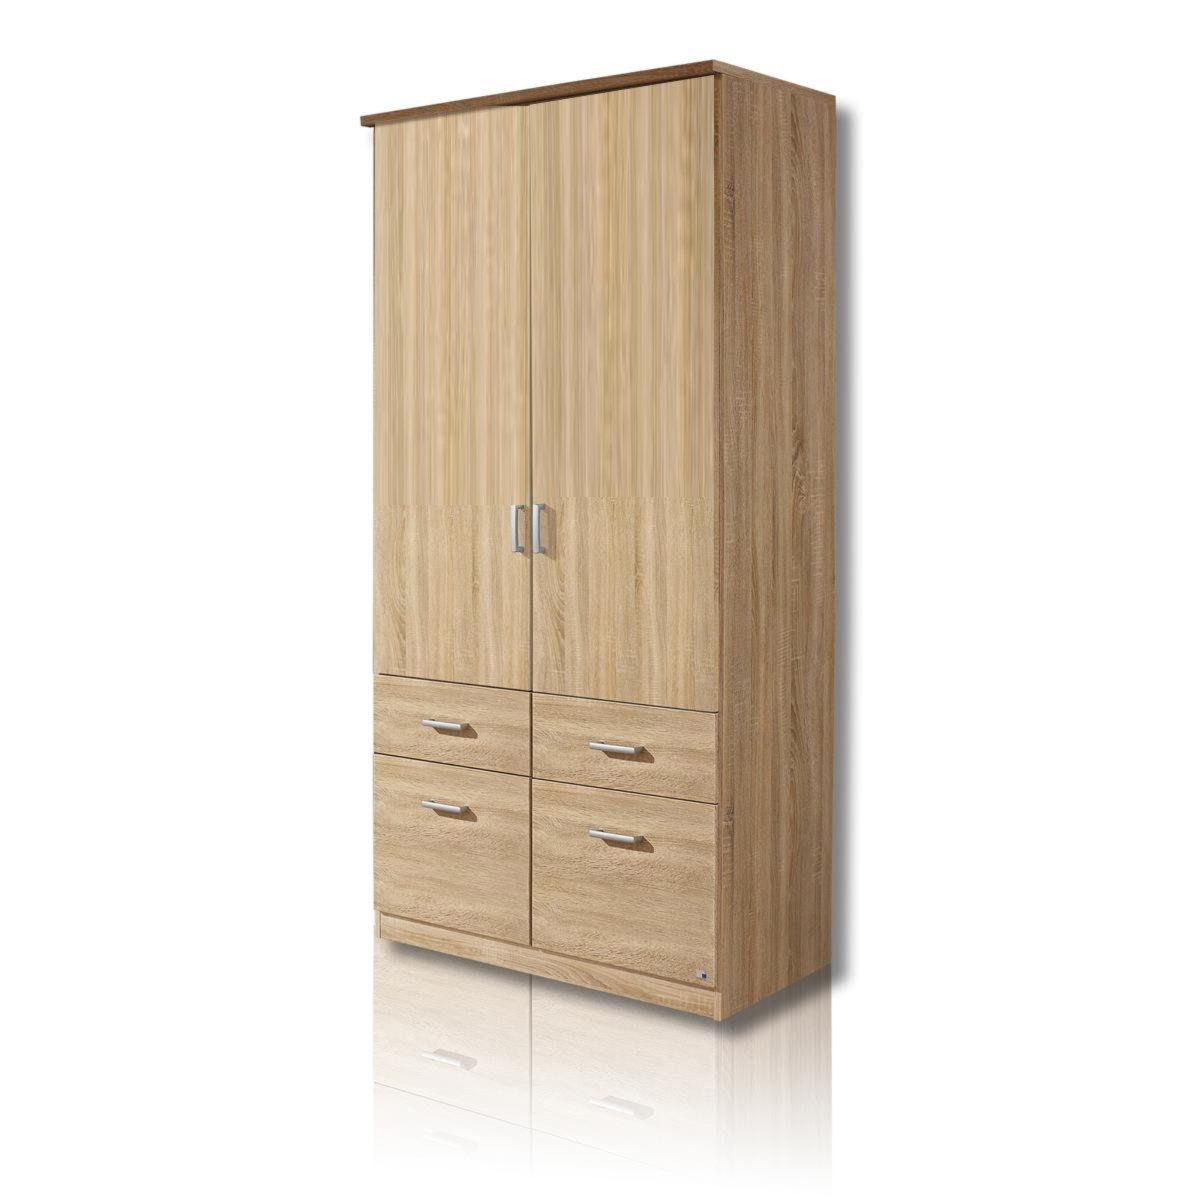 kleiderschrank bremen sonoma eiche 91 cm breit 4. Black Bedroom Furniture Sets. Home Design Ideas